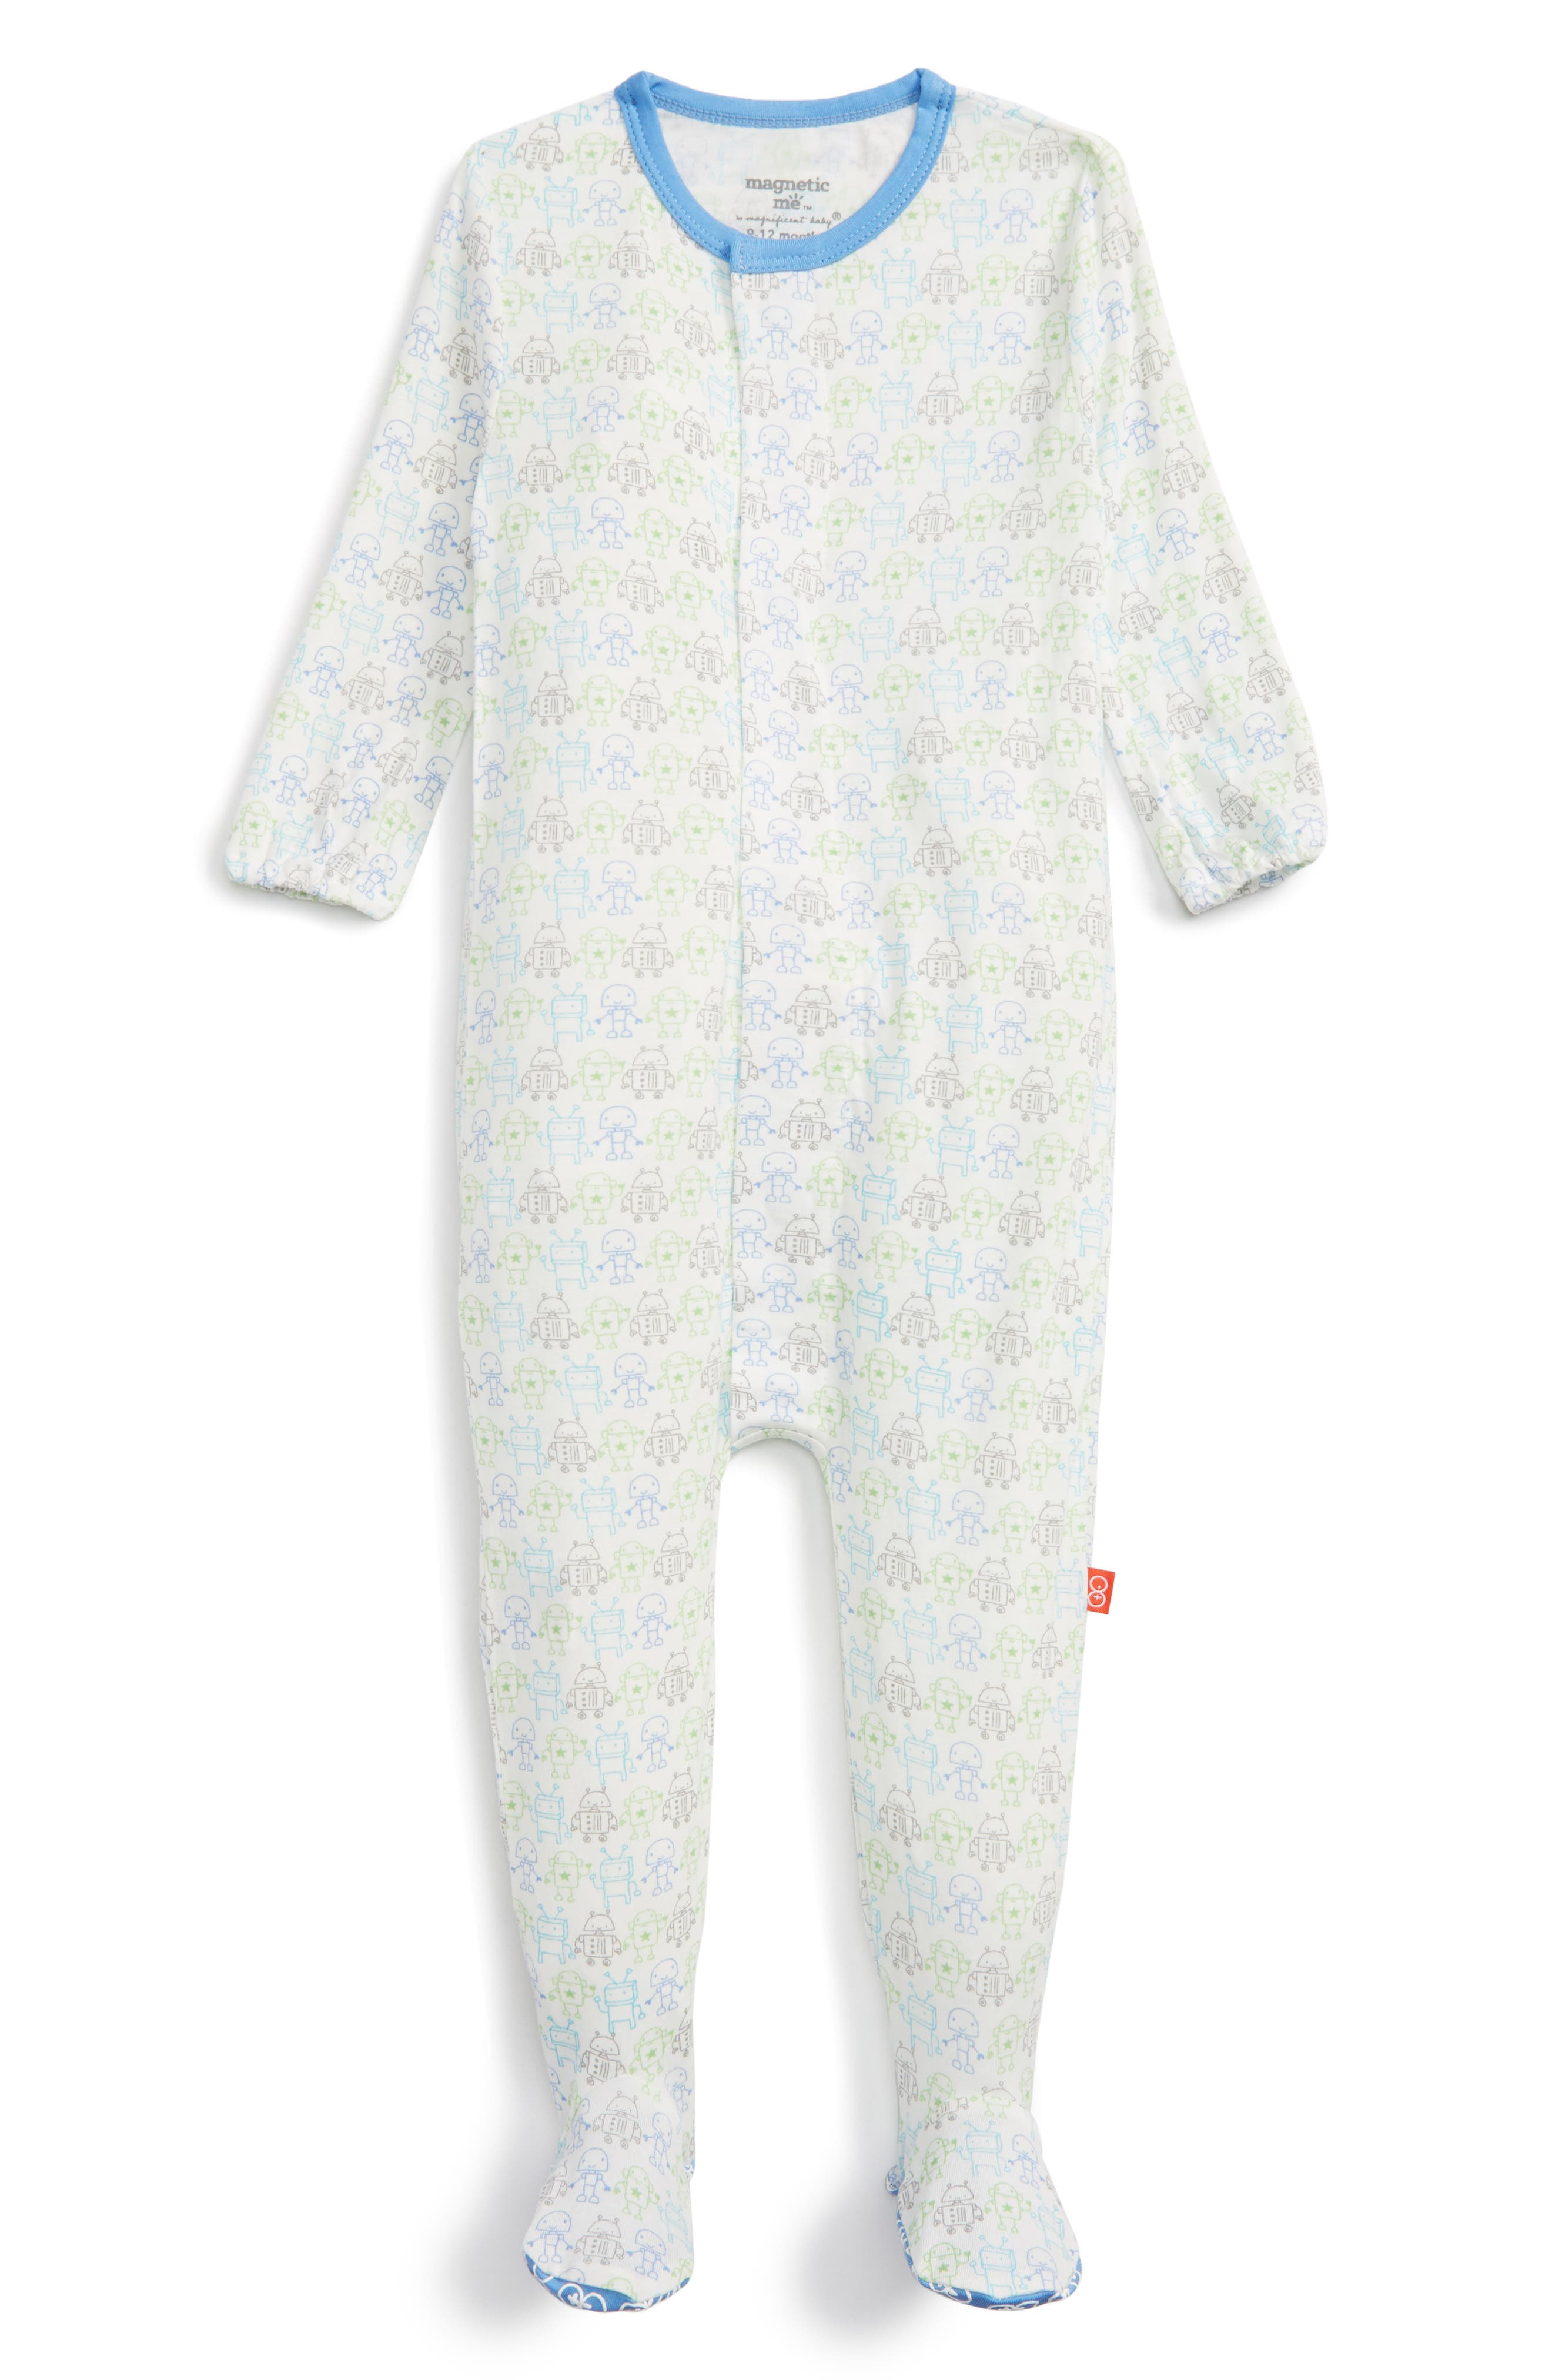 Print Fitted One-Piece Footie Pajamas,                             Main thumbnail 2, color,